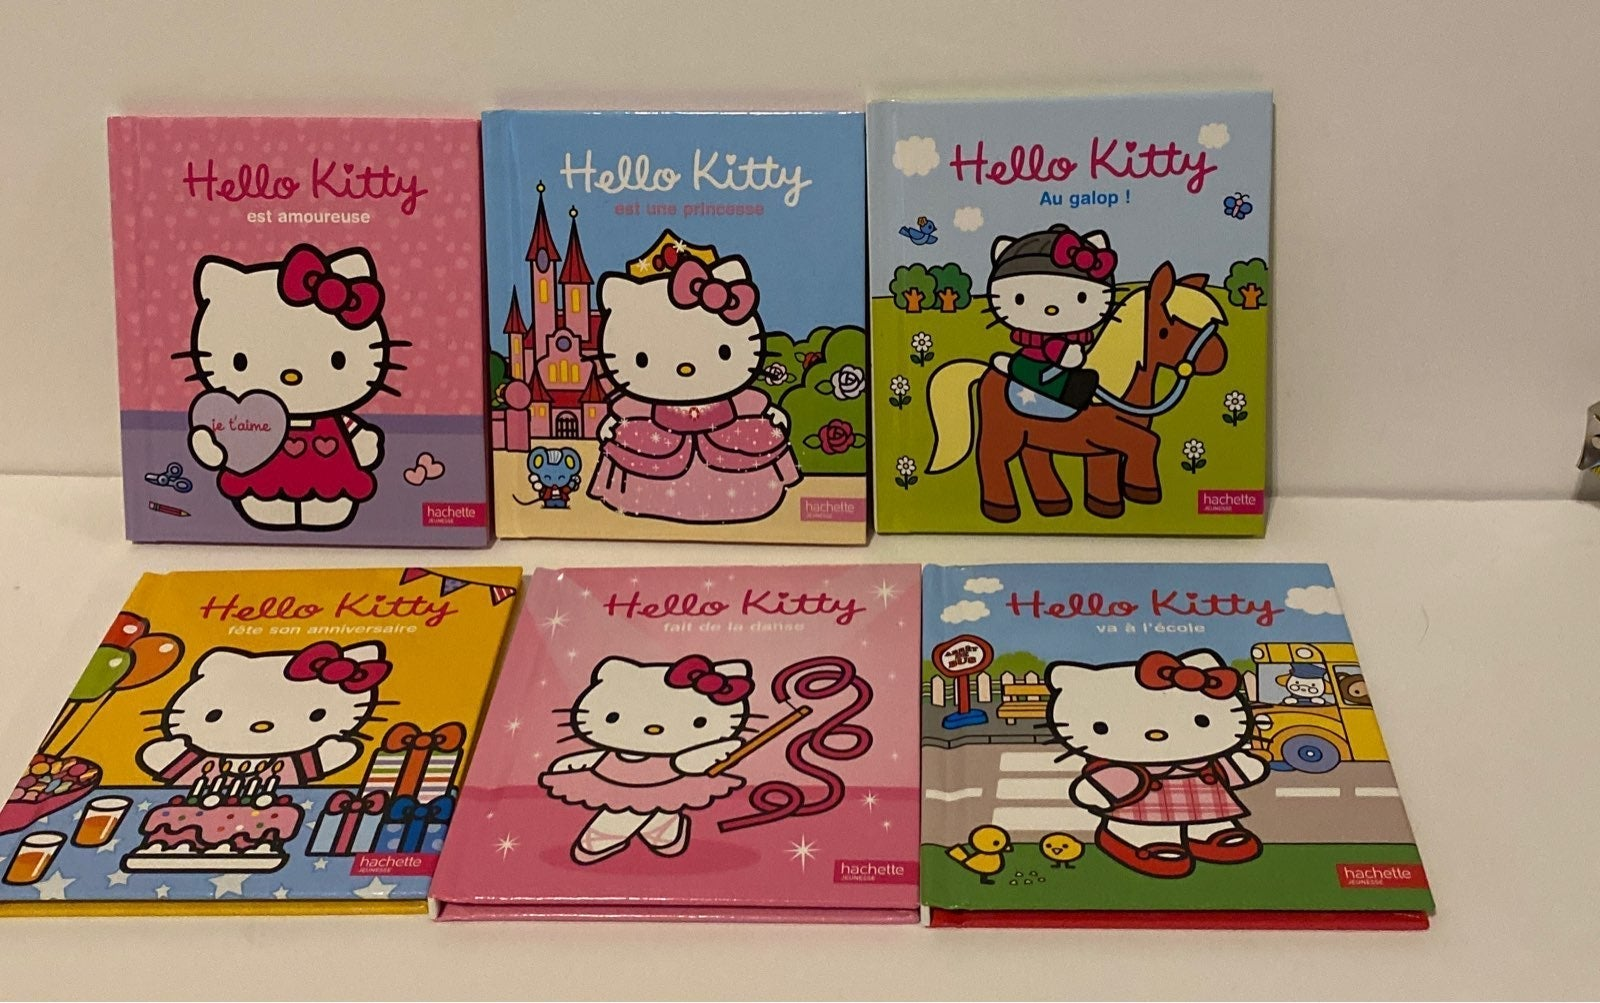 Hello Kitty books in French